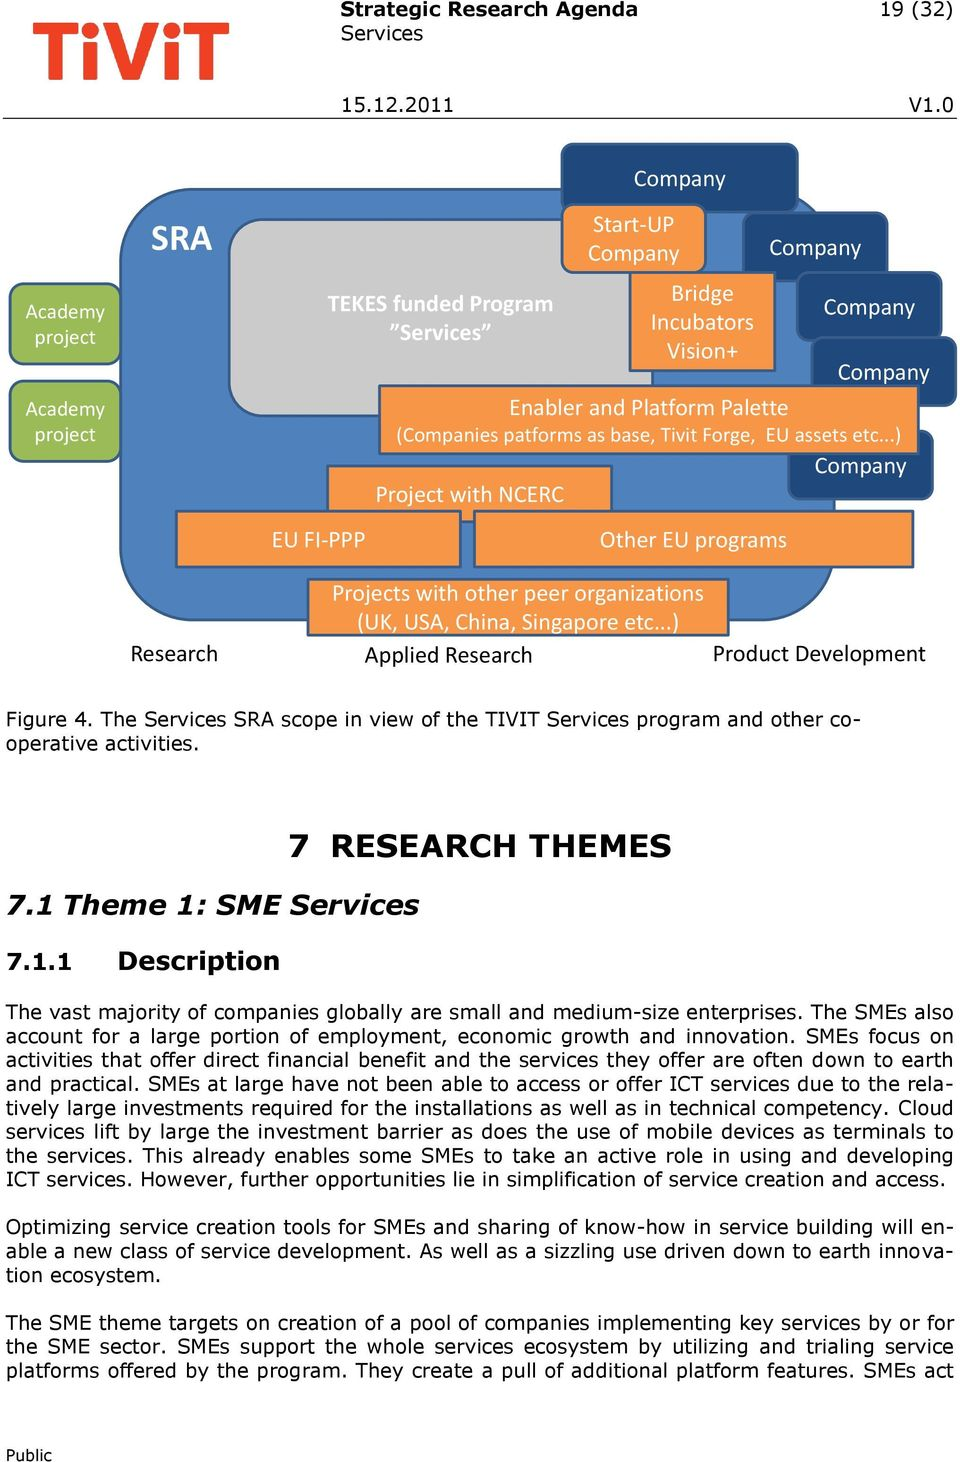 ..) Research Applied Research Product Development Figure 4. The SRA scope in view of the TIVIT program and other cooperative activities. 7.1